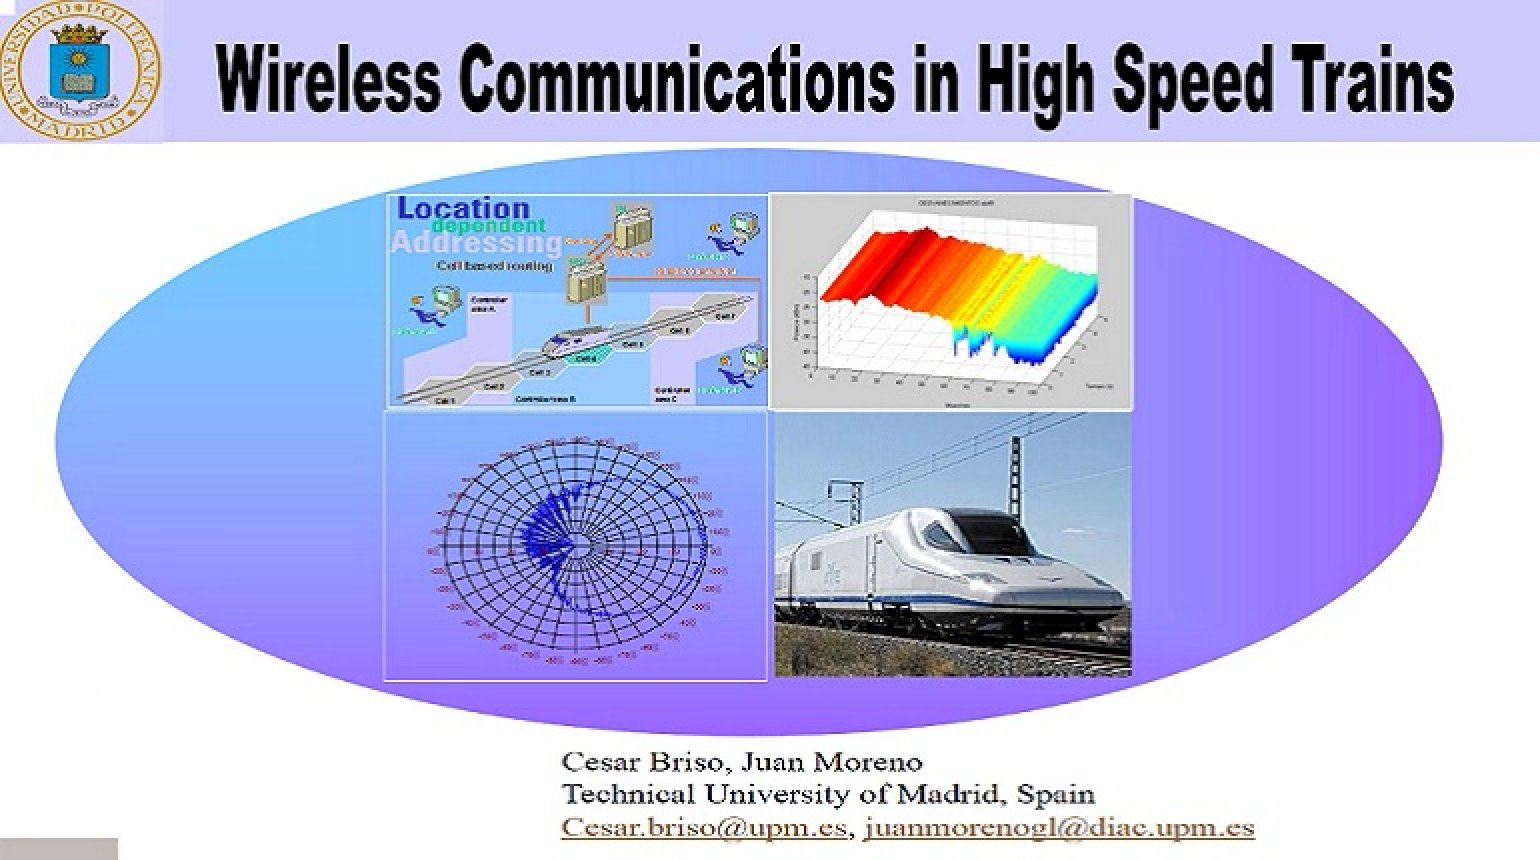 Video - Wireless Communications in High Speed Trains